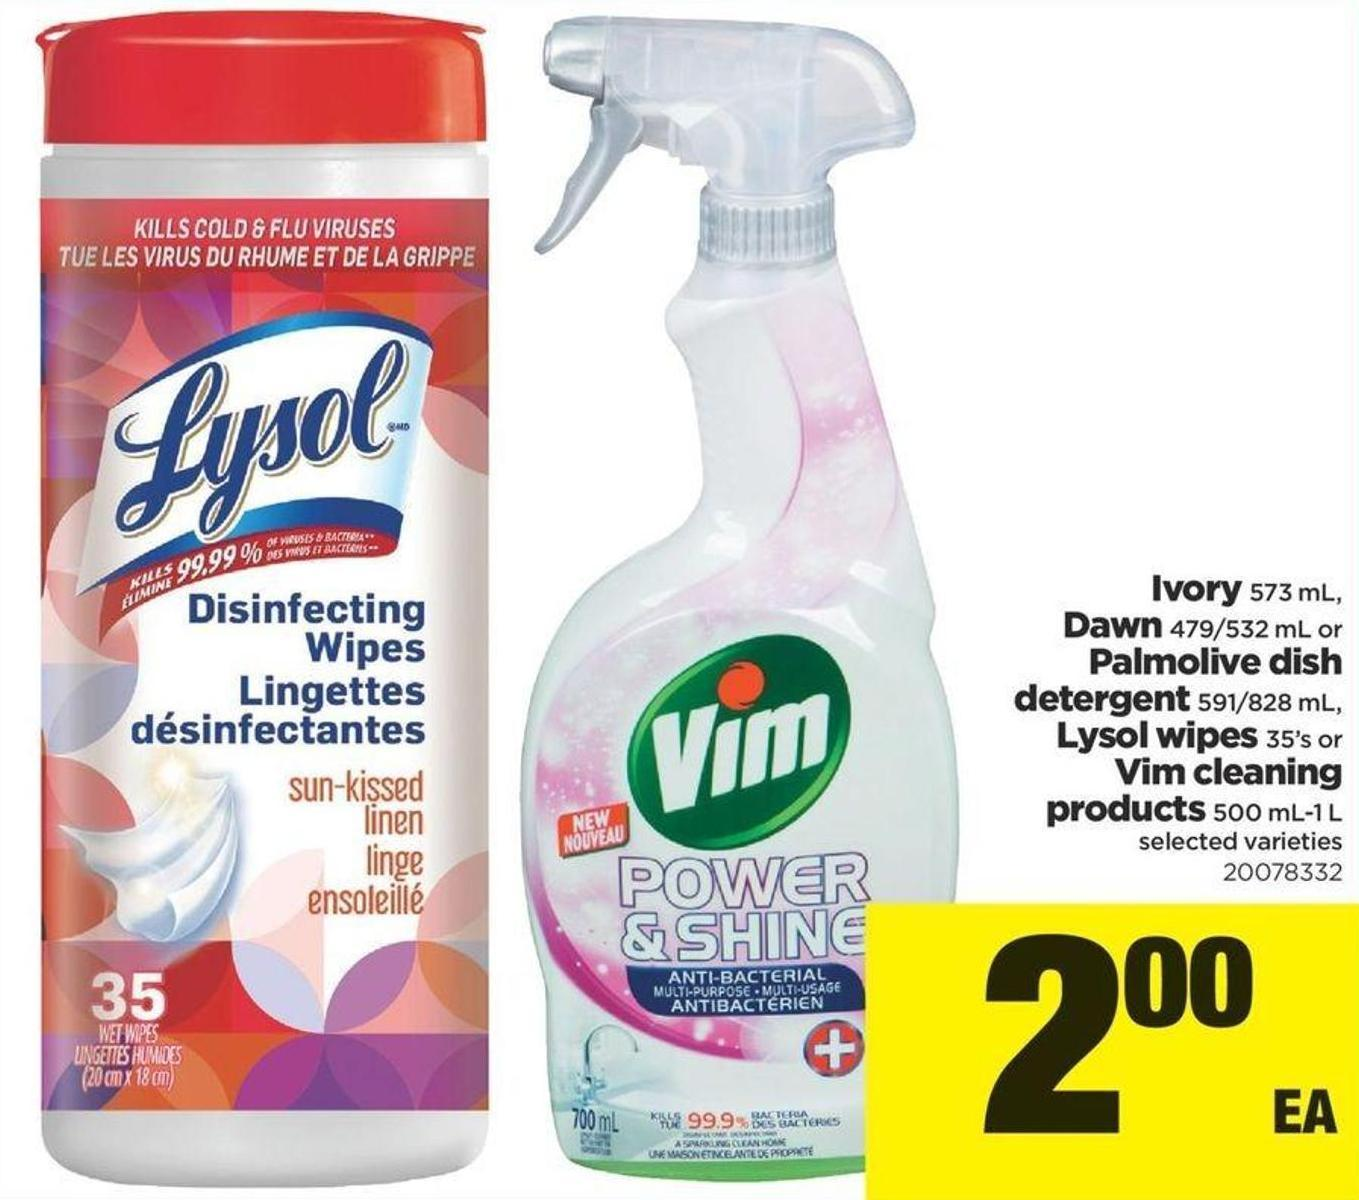 Ivory - 573 Ml - Dawn - 479/532 Ml Or Palmolive Dish Detergent - 591/828 Ml - Lysol Wipes - 35's Or Vim Cleaning Products - 500 Ml-1 L